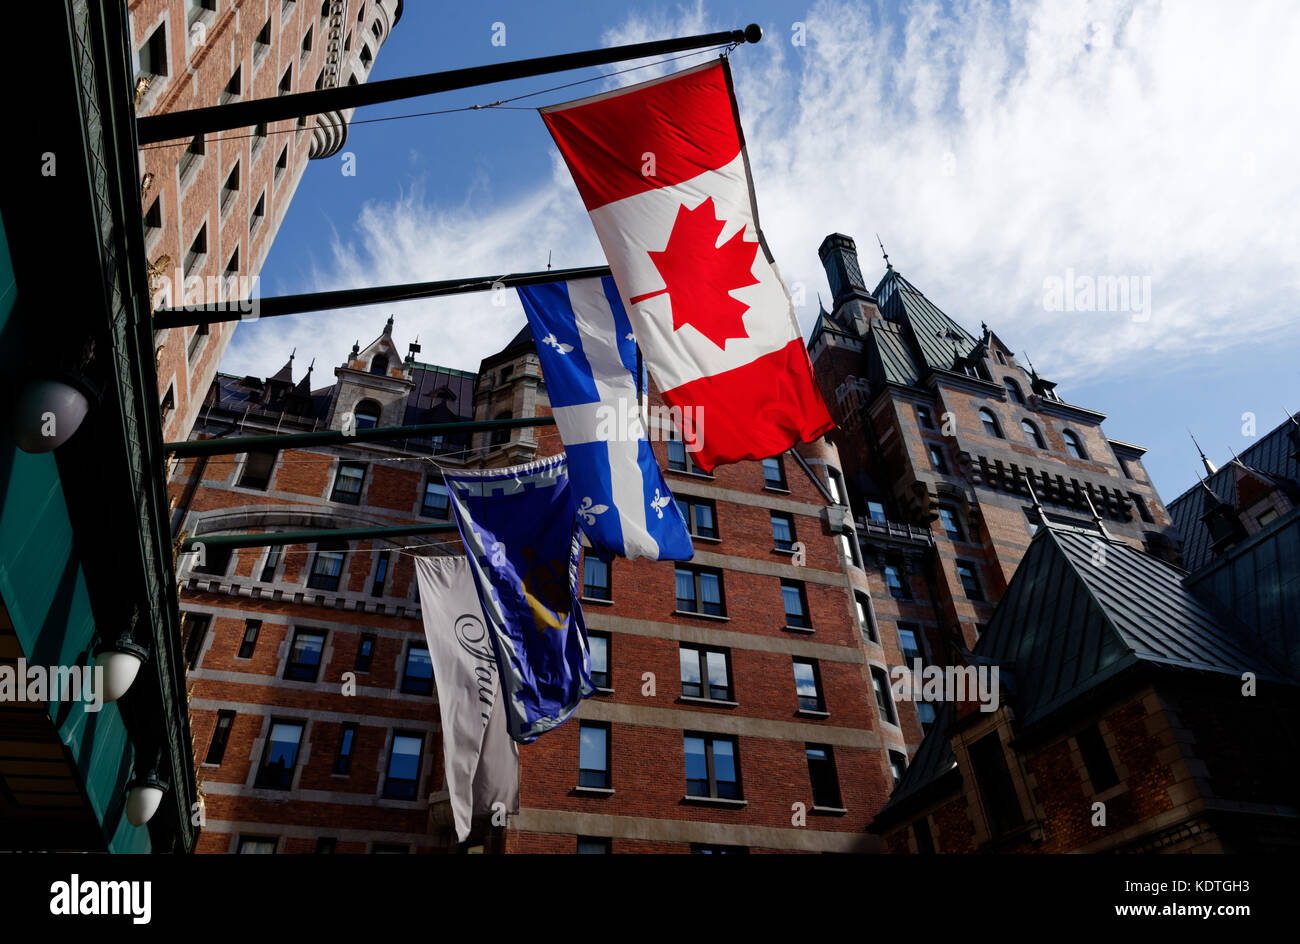 Quebec Flag (Fleur de Lys) and the Canadian flag (Maple Leaf) flying outside the Chateau Frontenac Hotel in Quebec - Stock Image